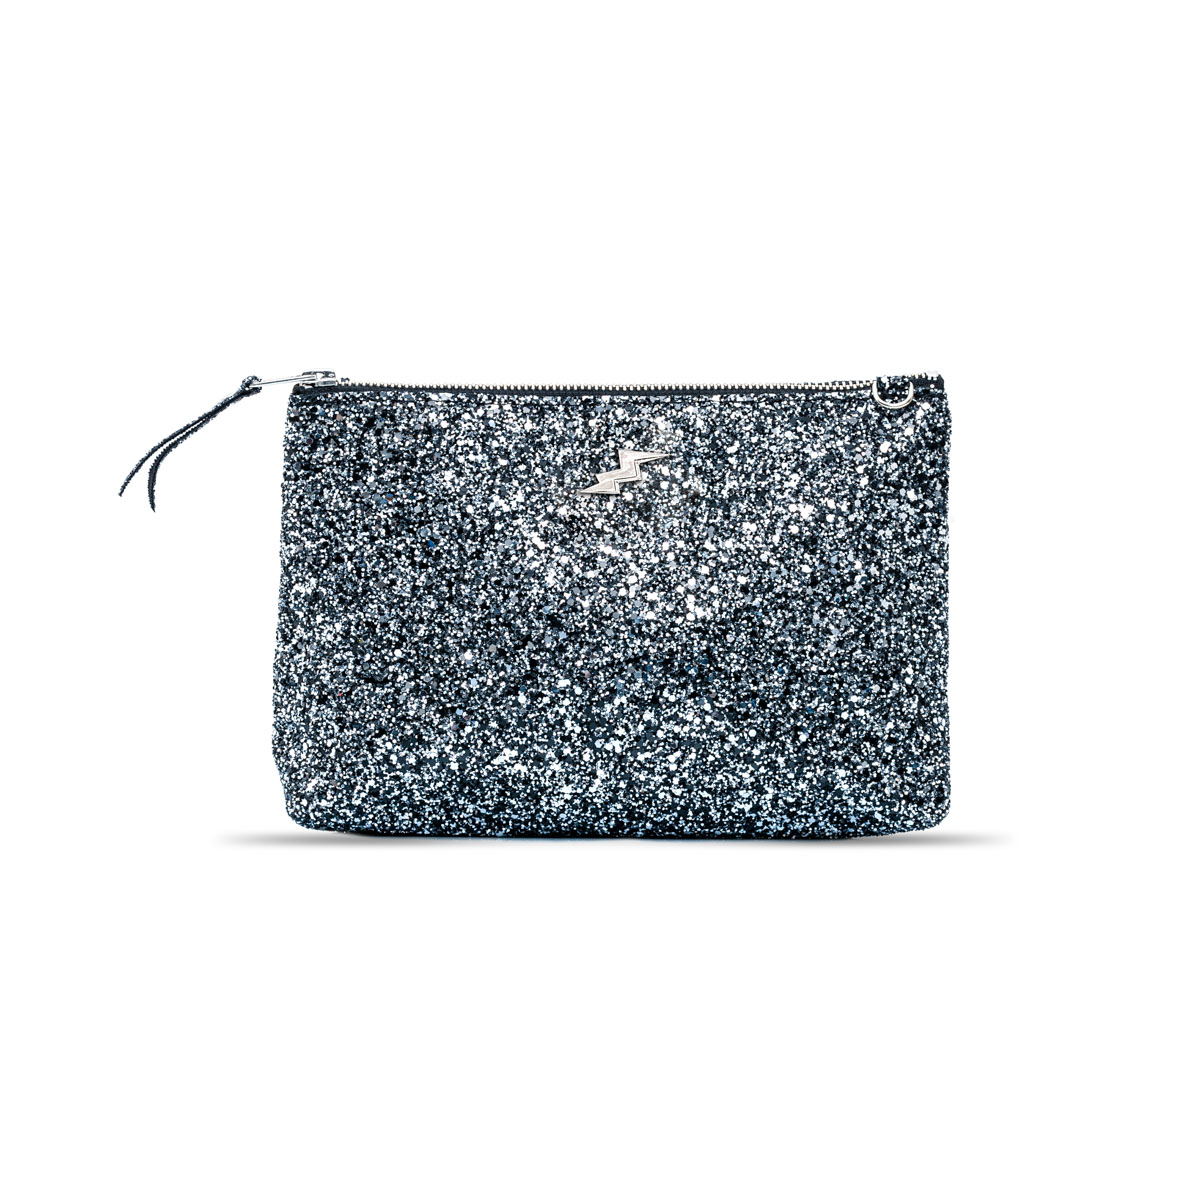 Pochette Berlingot Black Diamond